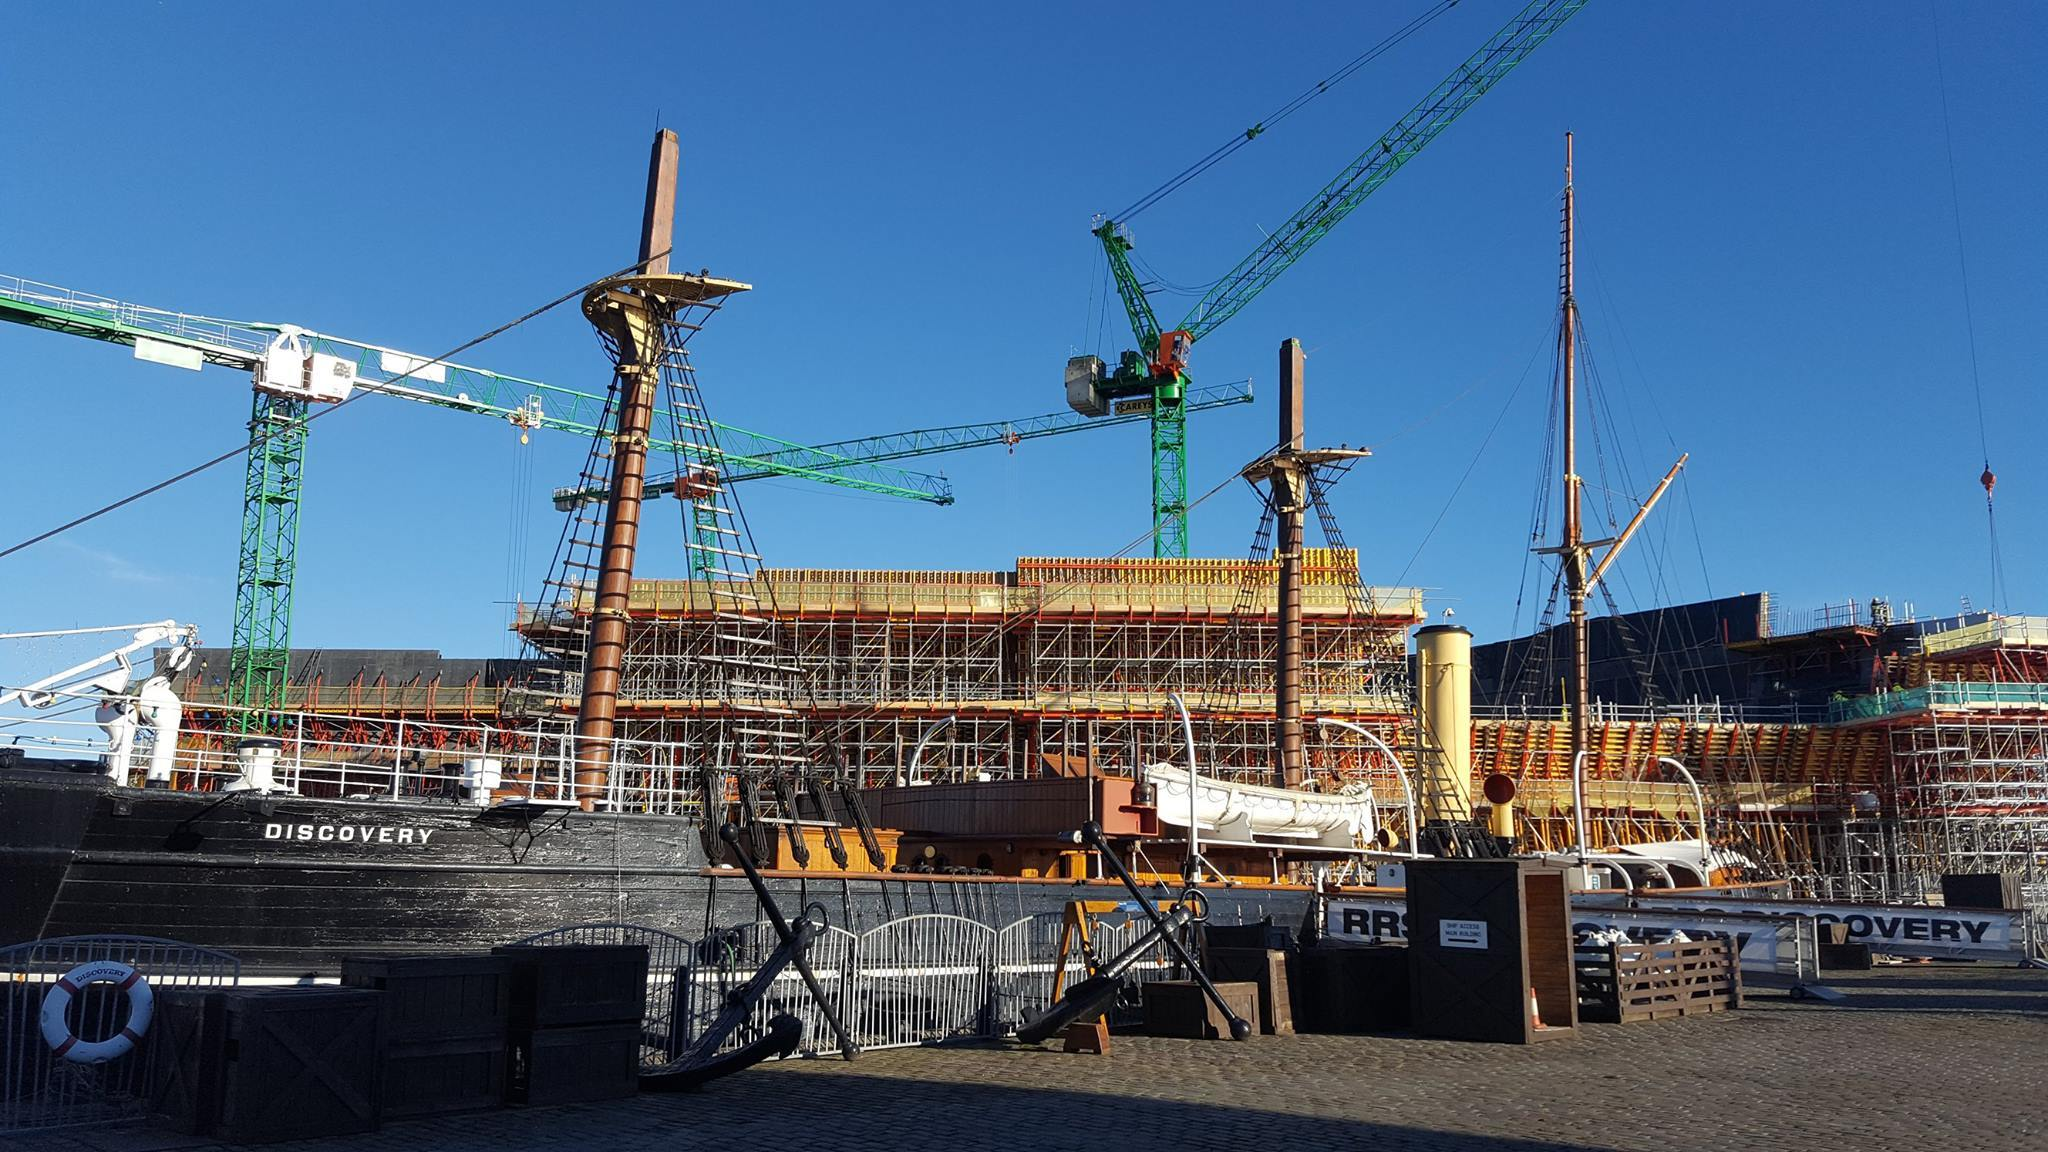 The mast work under way on the Discovery.